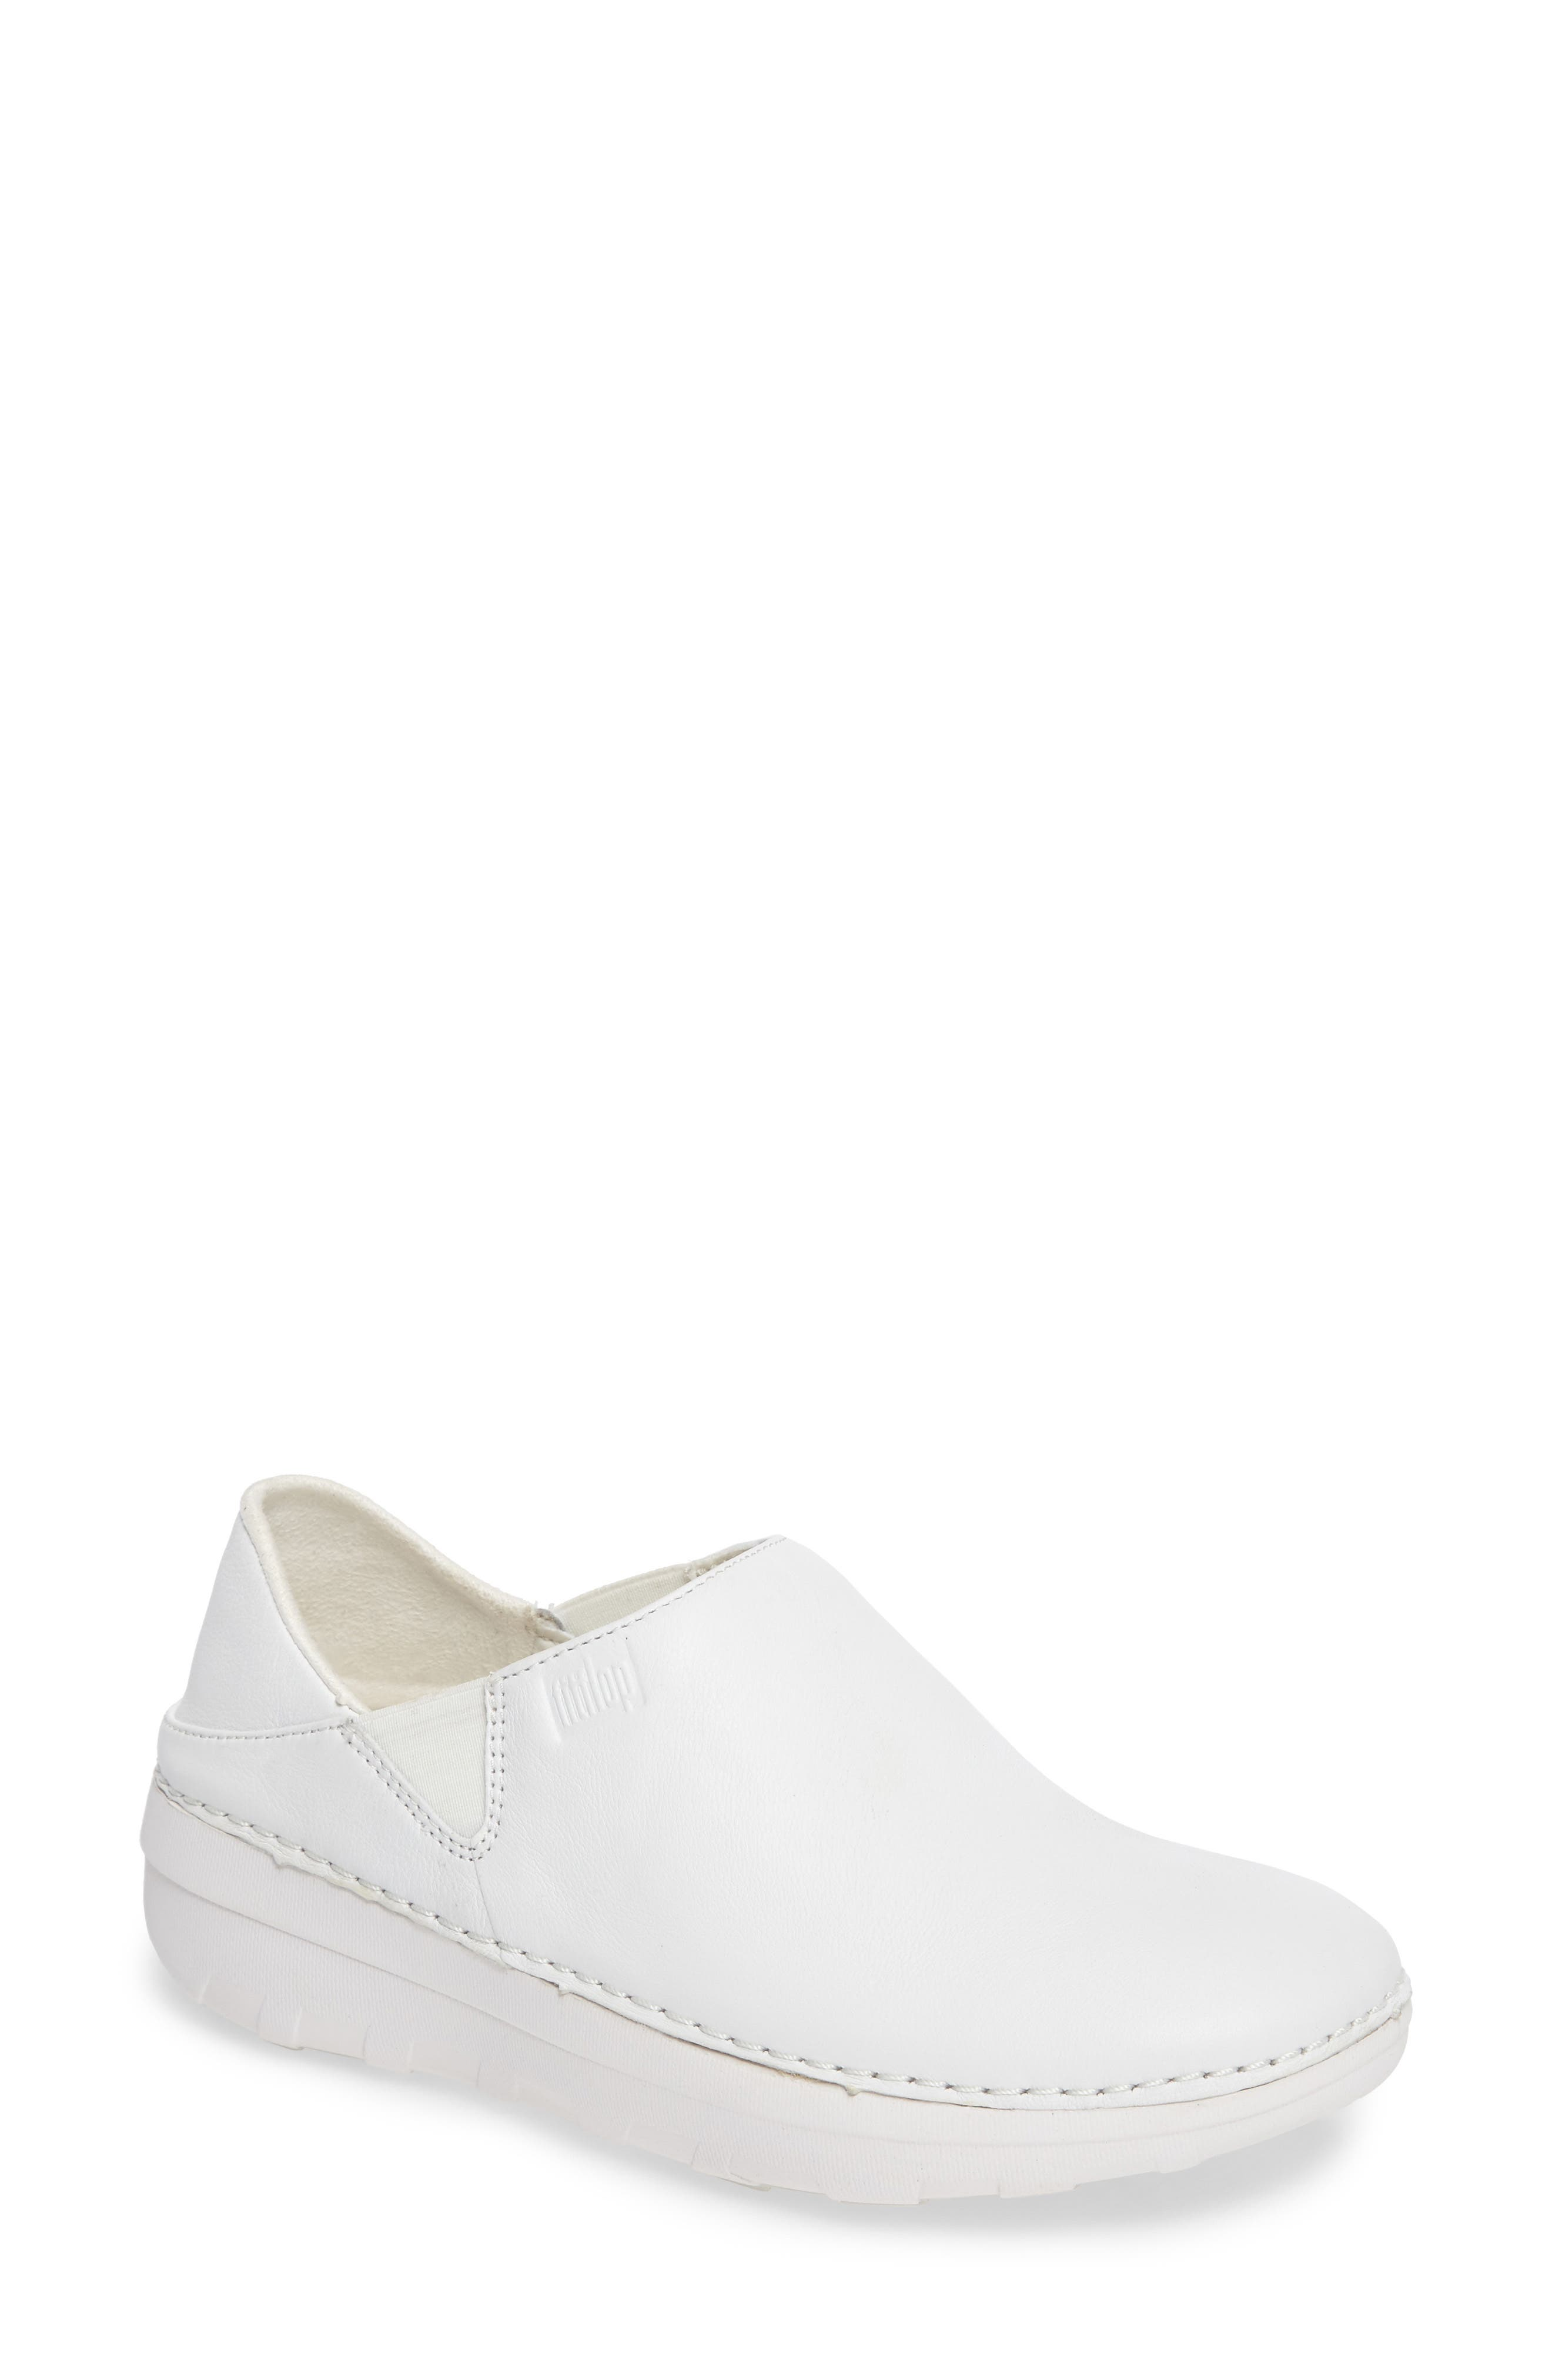 Alternate Image 1 Selected - FitFlop Superloafer Flat (Women)